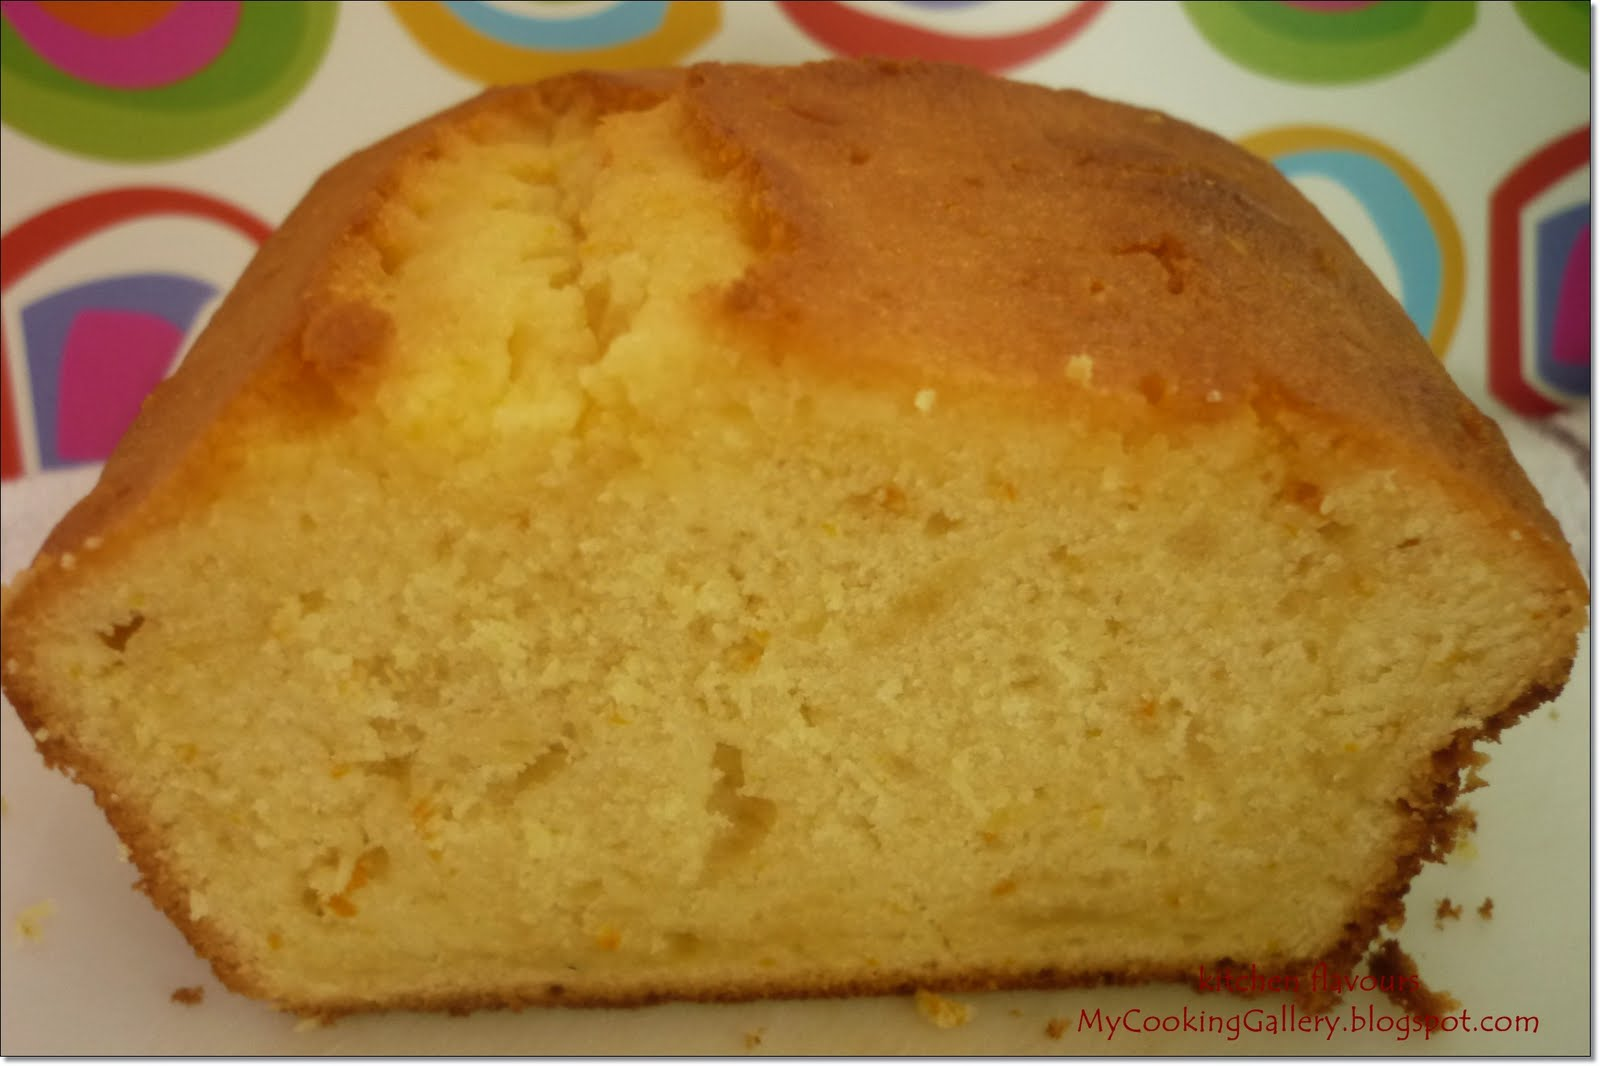 kitchen flavours: Orange Pound Cake